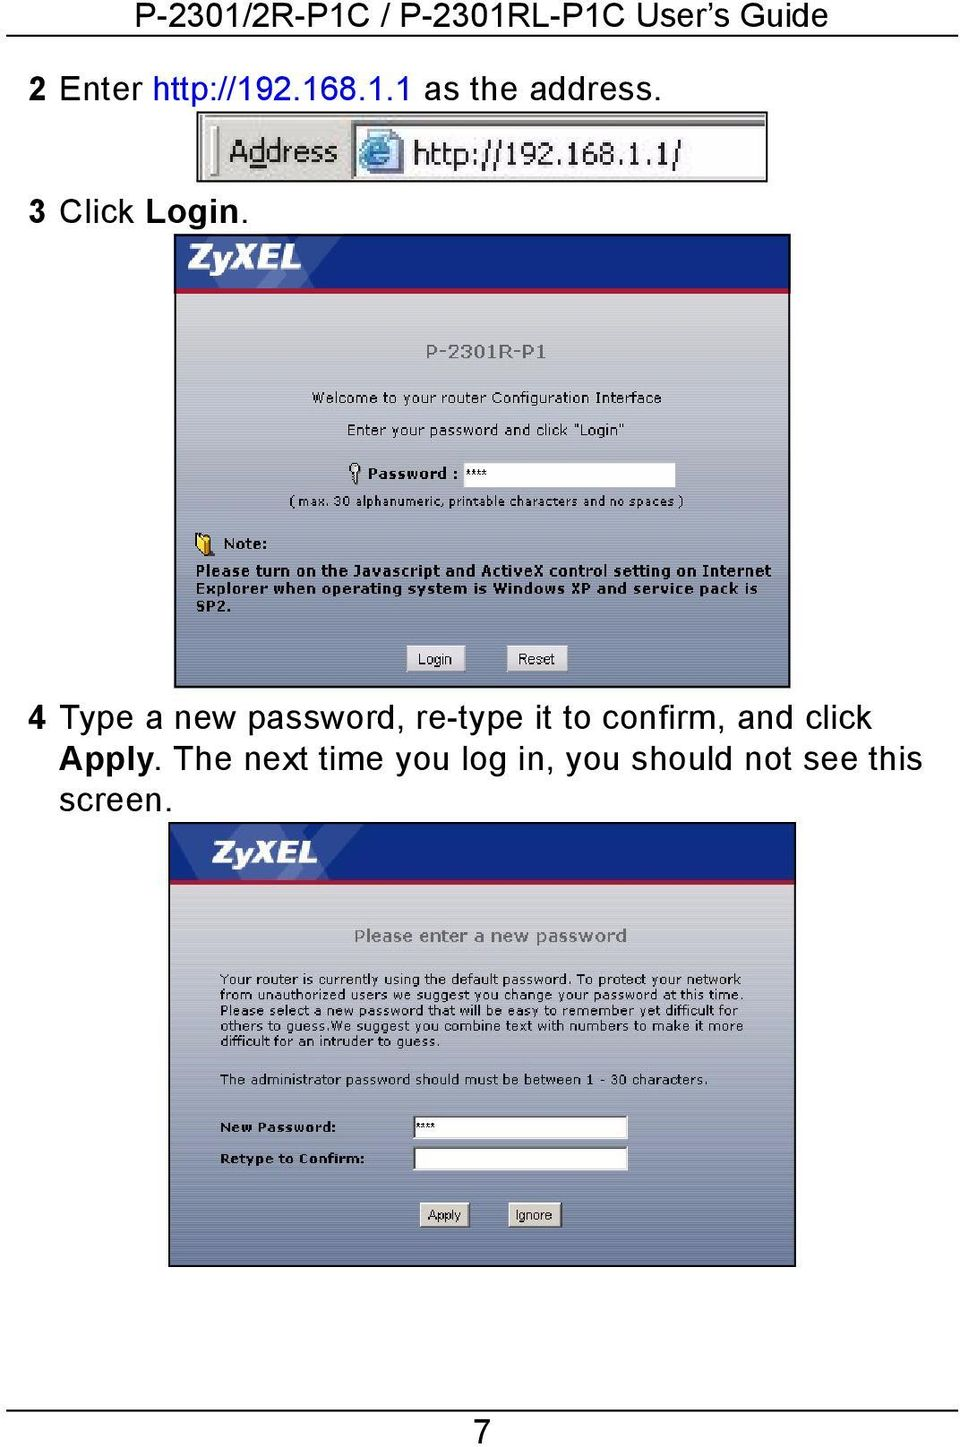 4 Type a new password, re-type it to